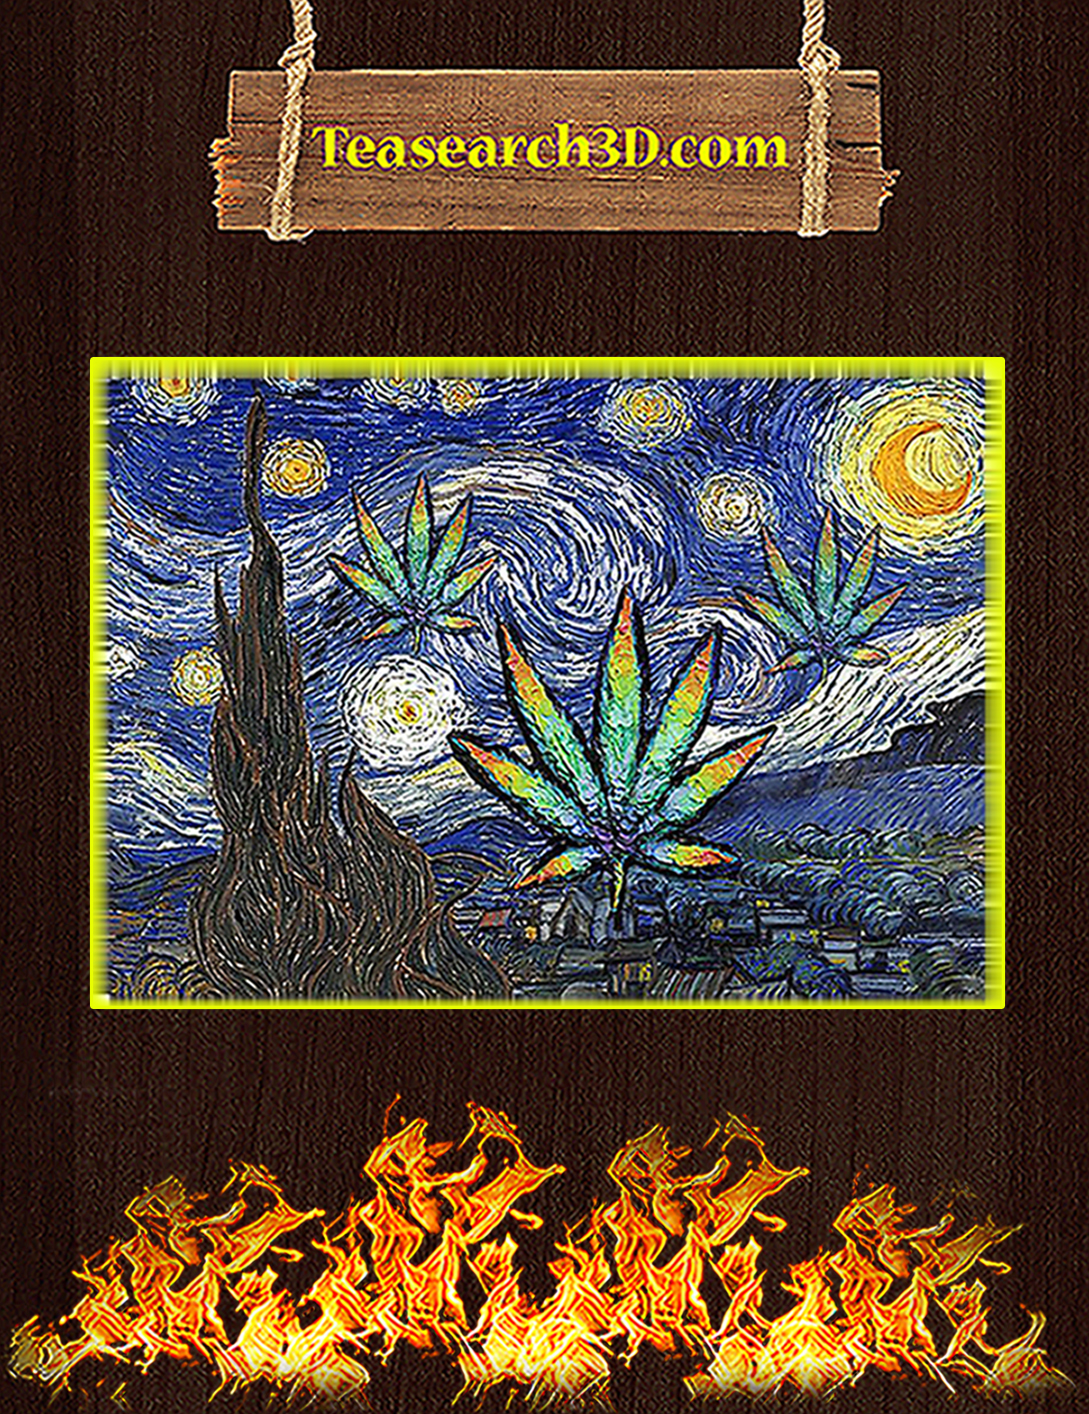 Weed cannabis starry night van gogh poster A2